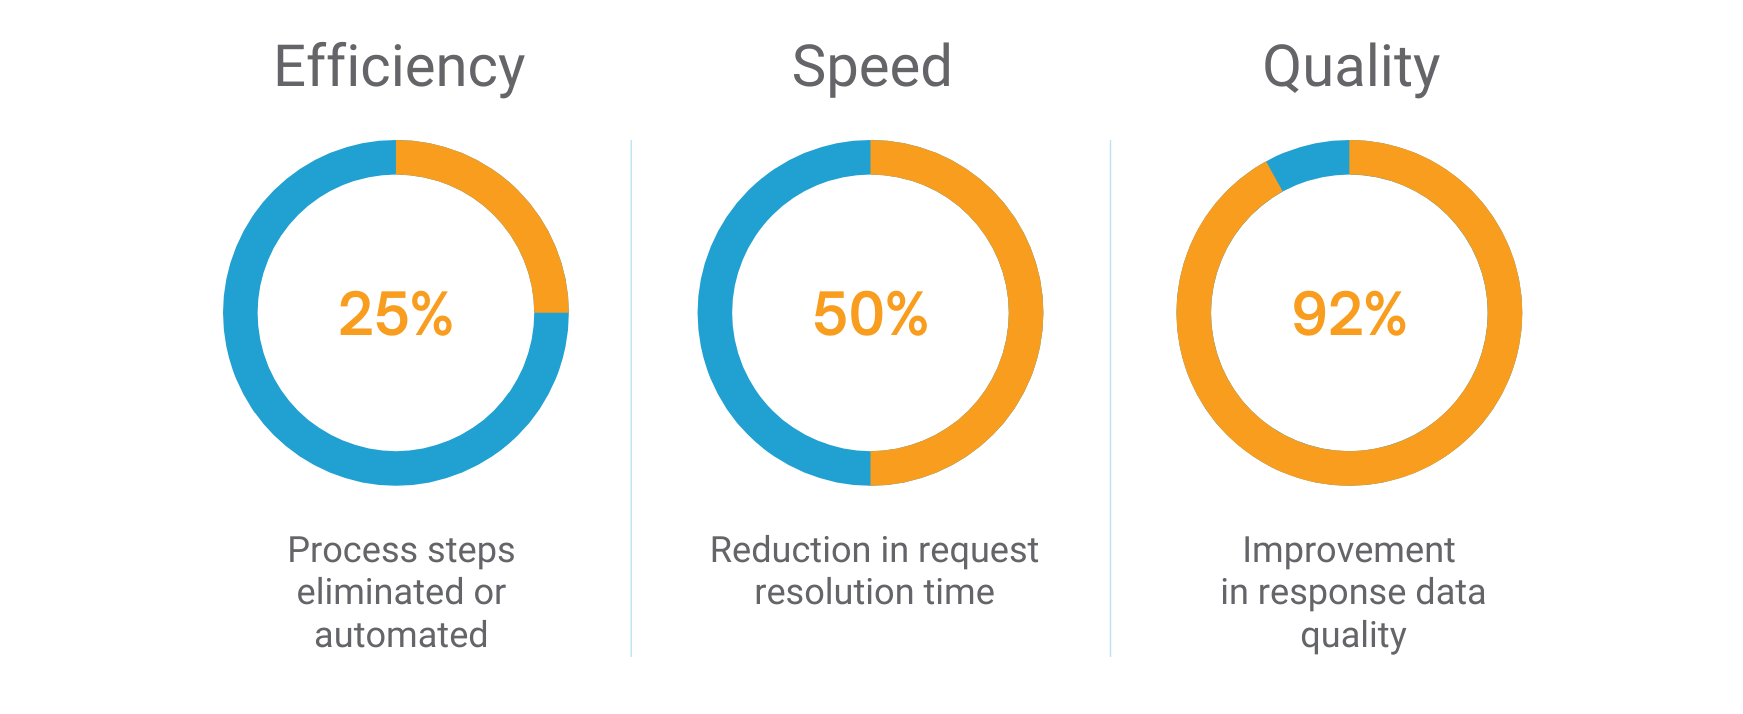 Regulatory Requests - Benefits: Increased Efficiency, Speed and Quality